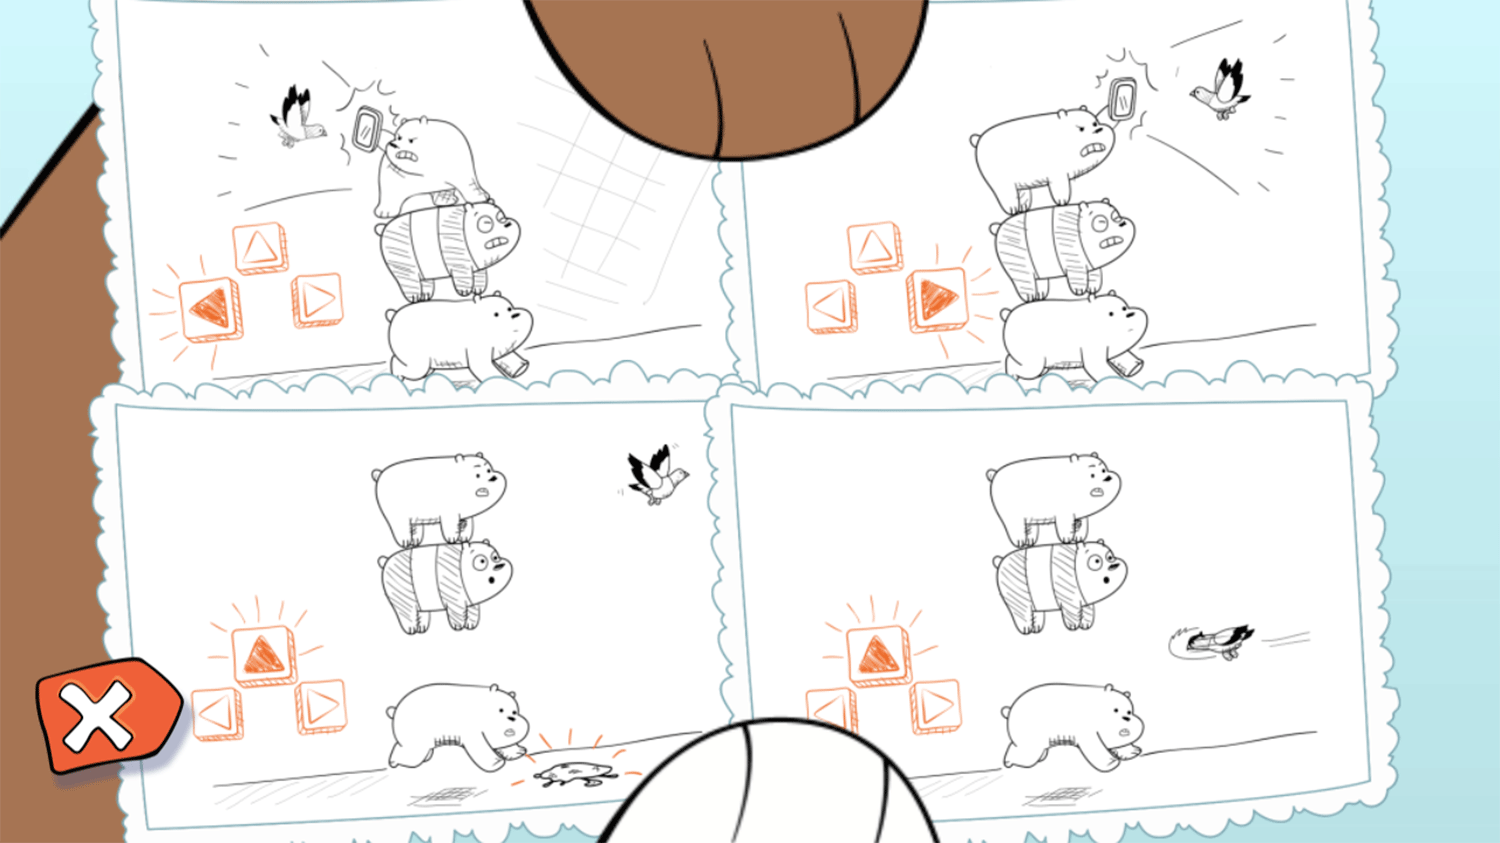 We Bare Bears Feathered Chase How To Play Screenshot.